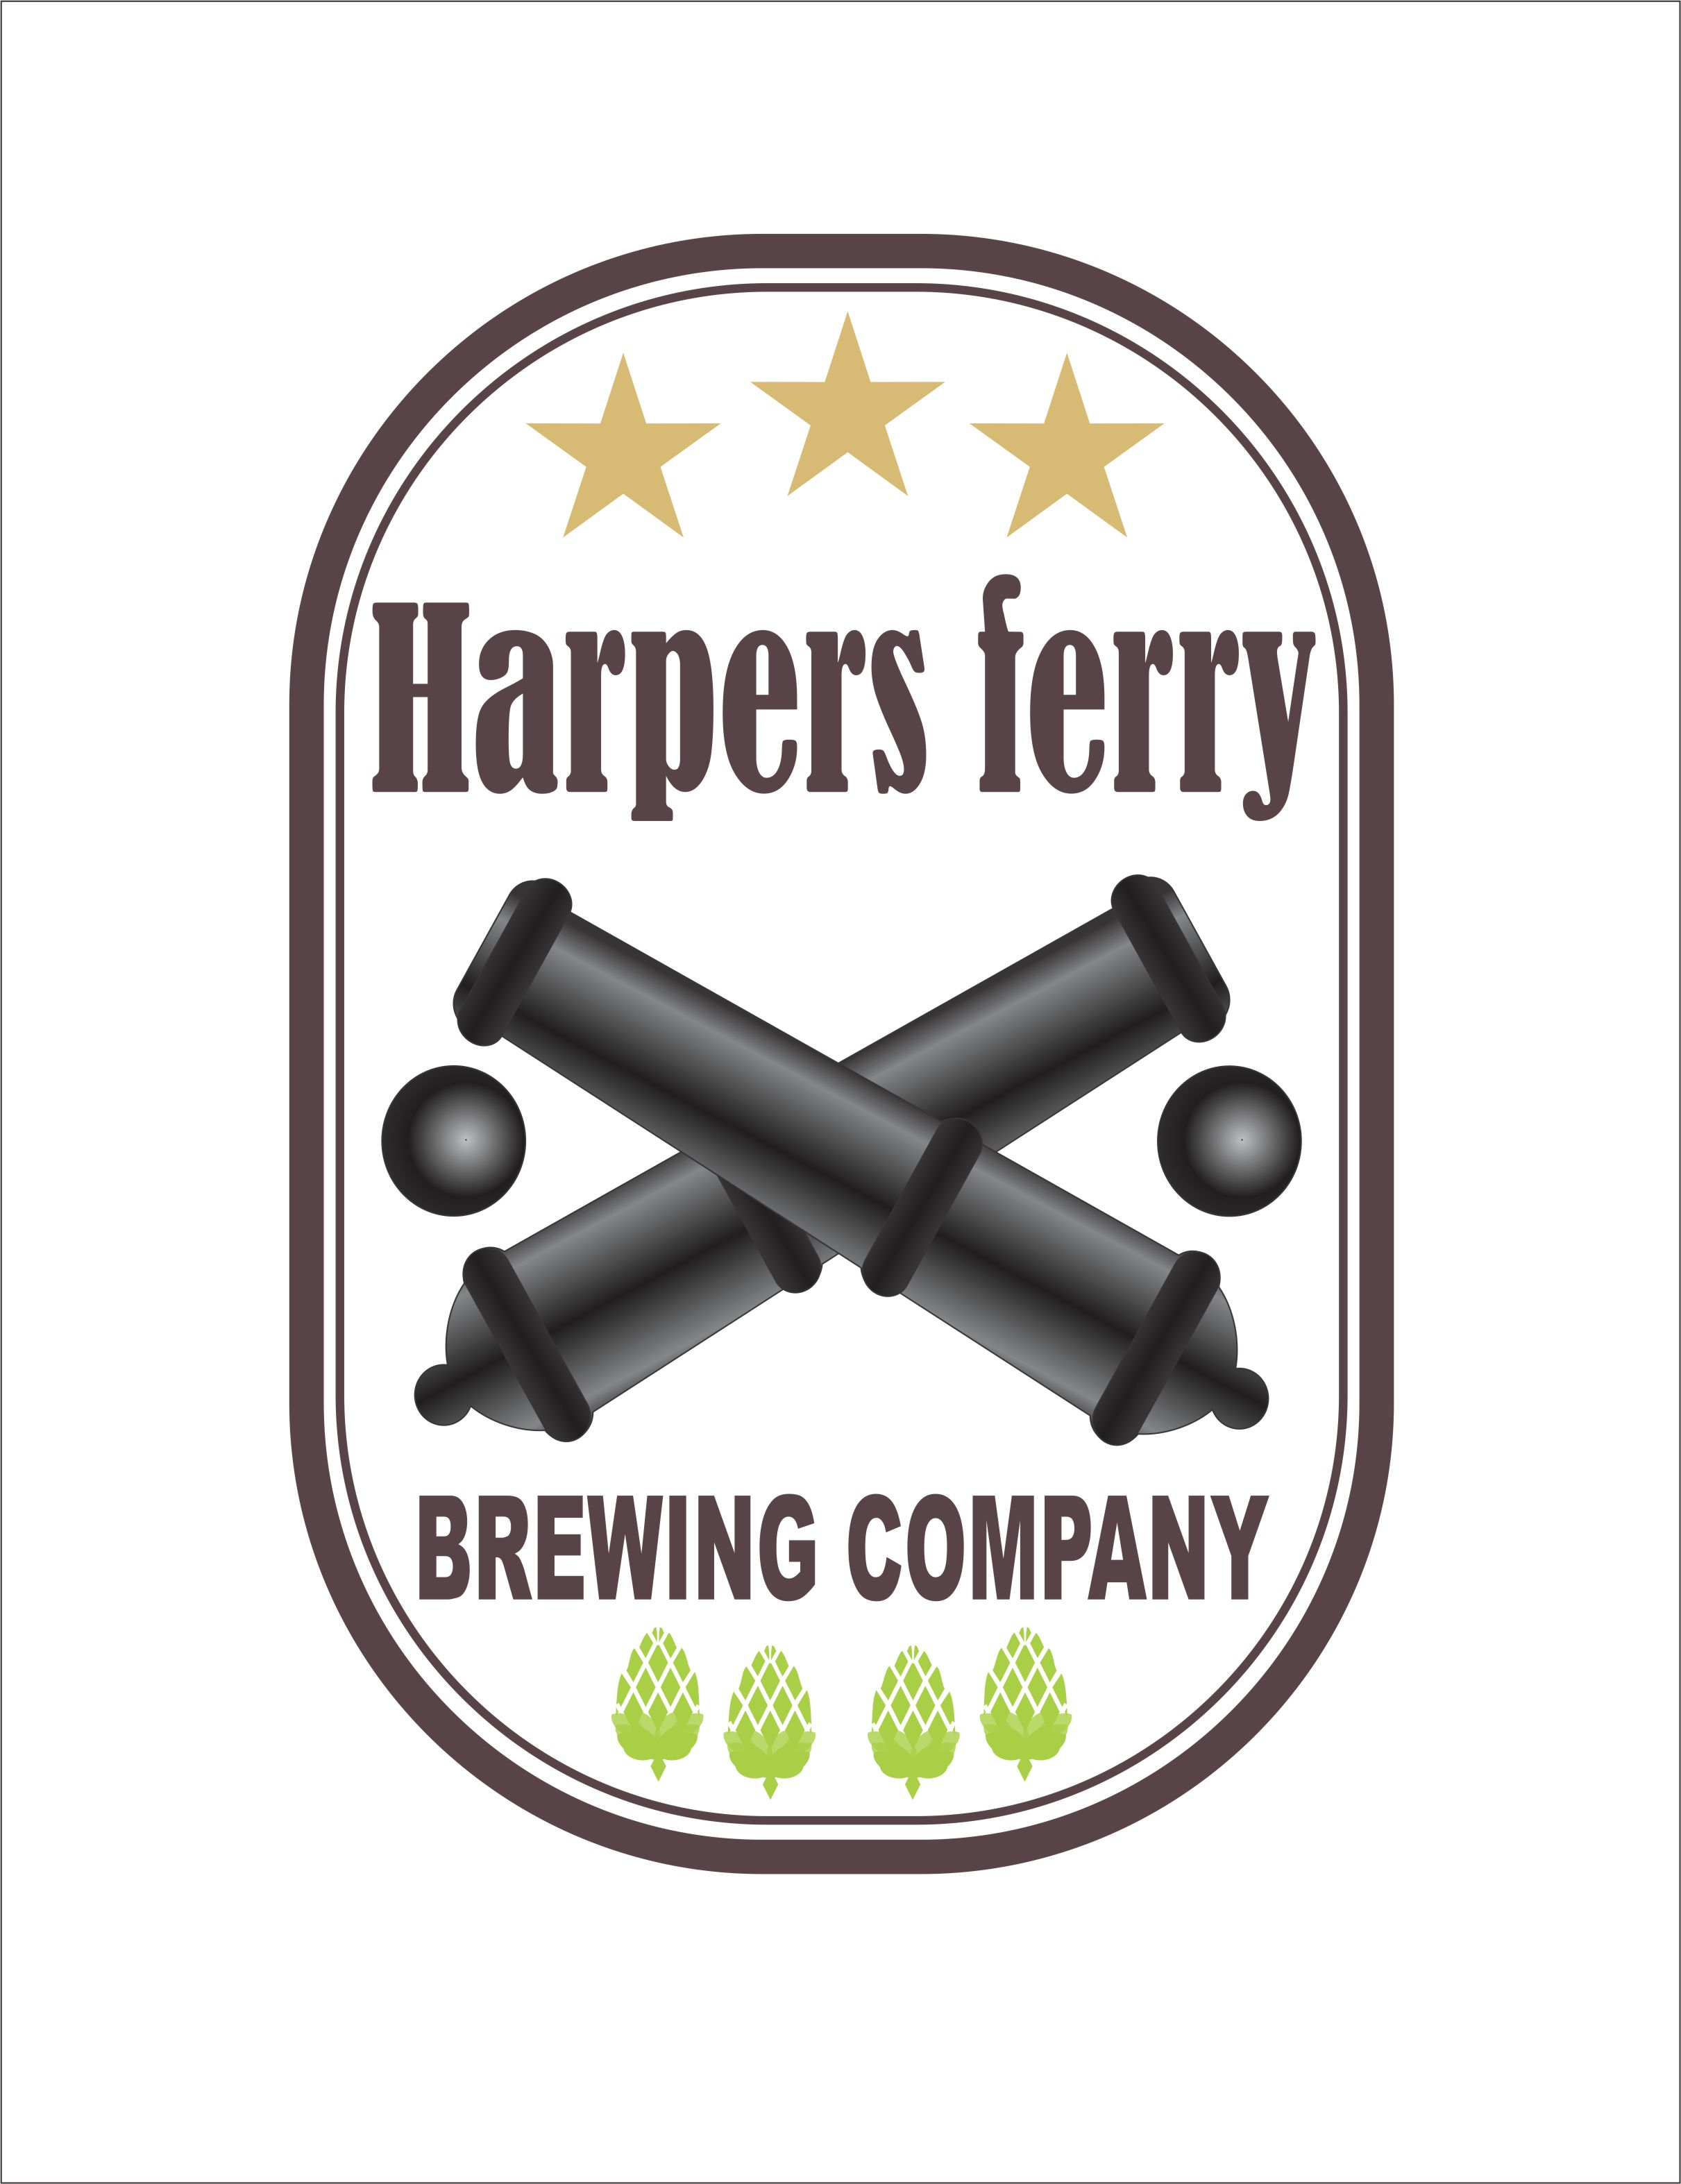 Logo Design by Nikola Kapunac - Entry No. 43 in the Logo Design Contest Unique Logo Design Wanted for Harpers ferry brewing company.